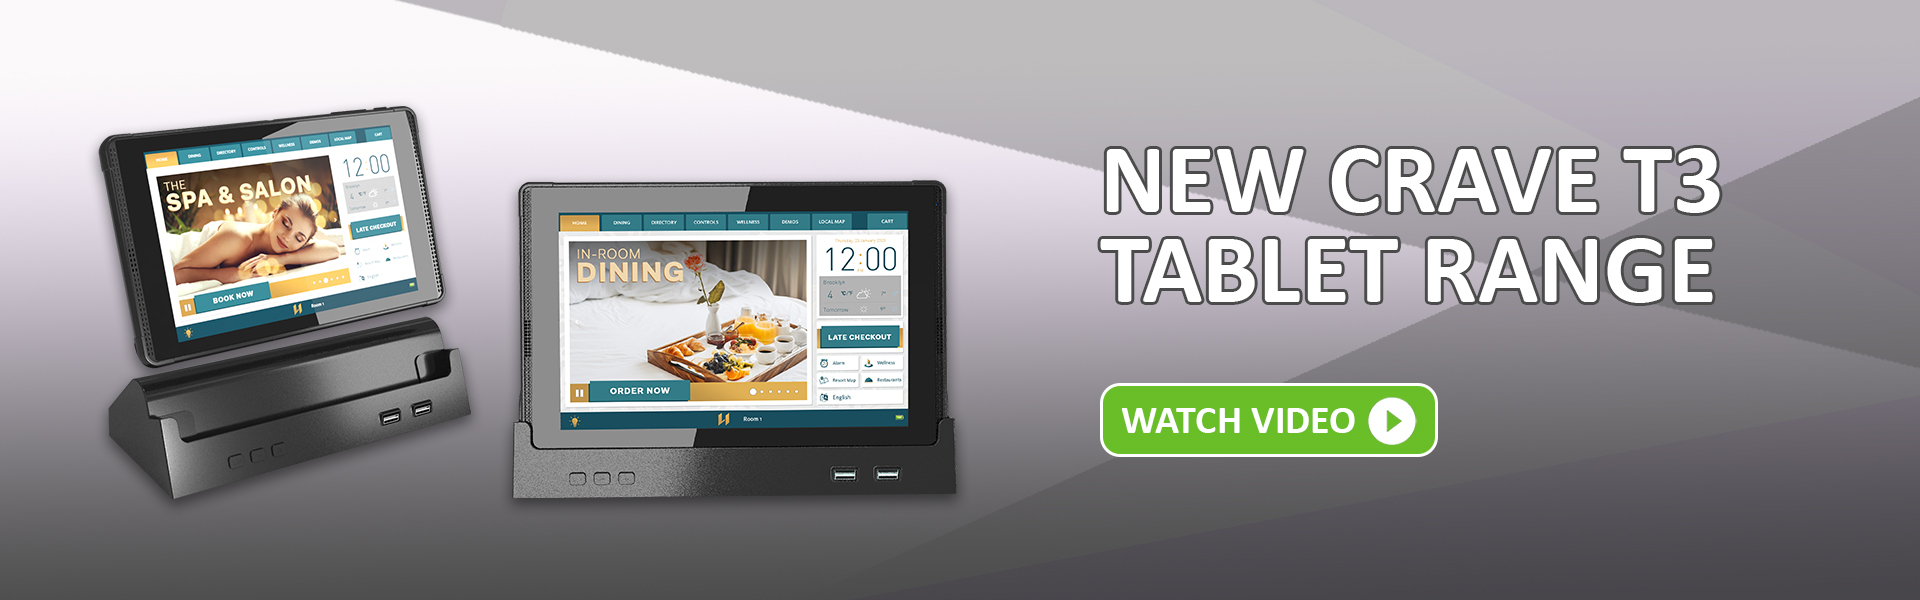 The New Crave T3 Tablet Range